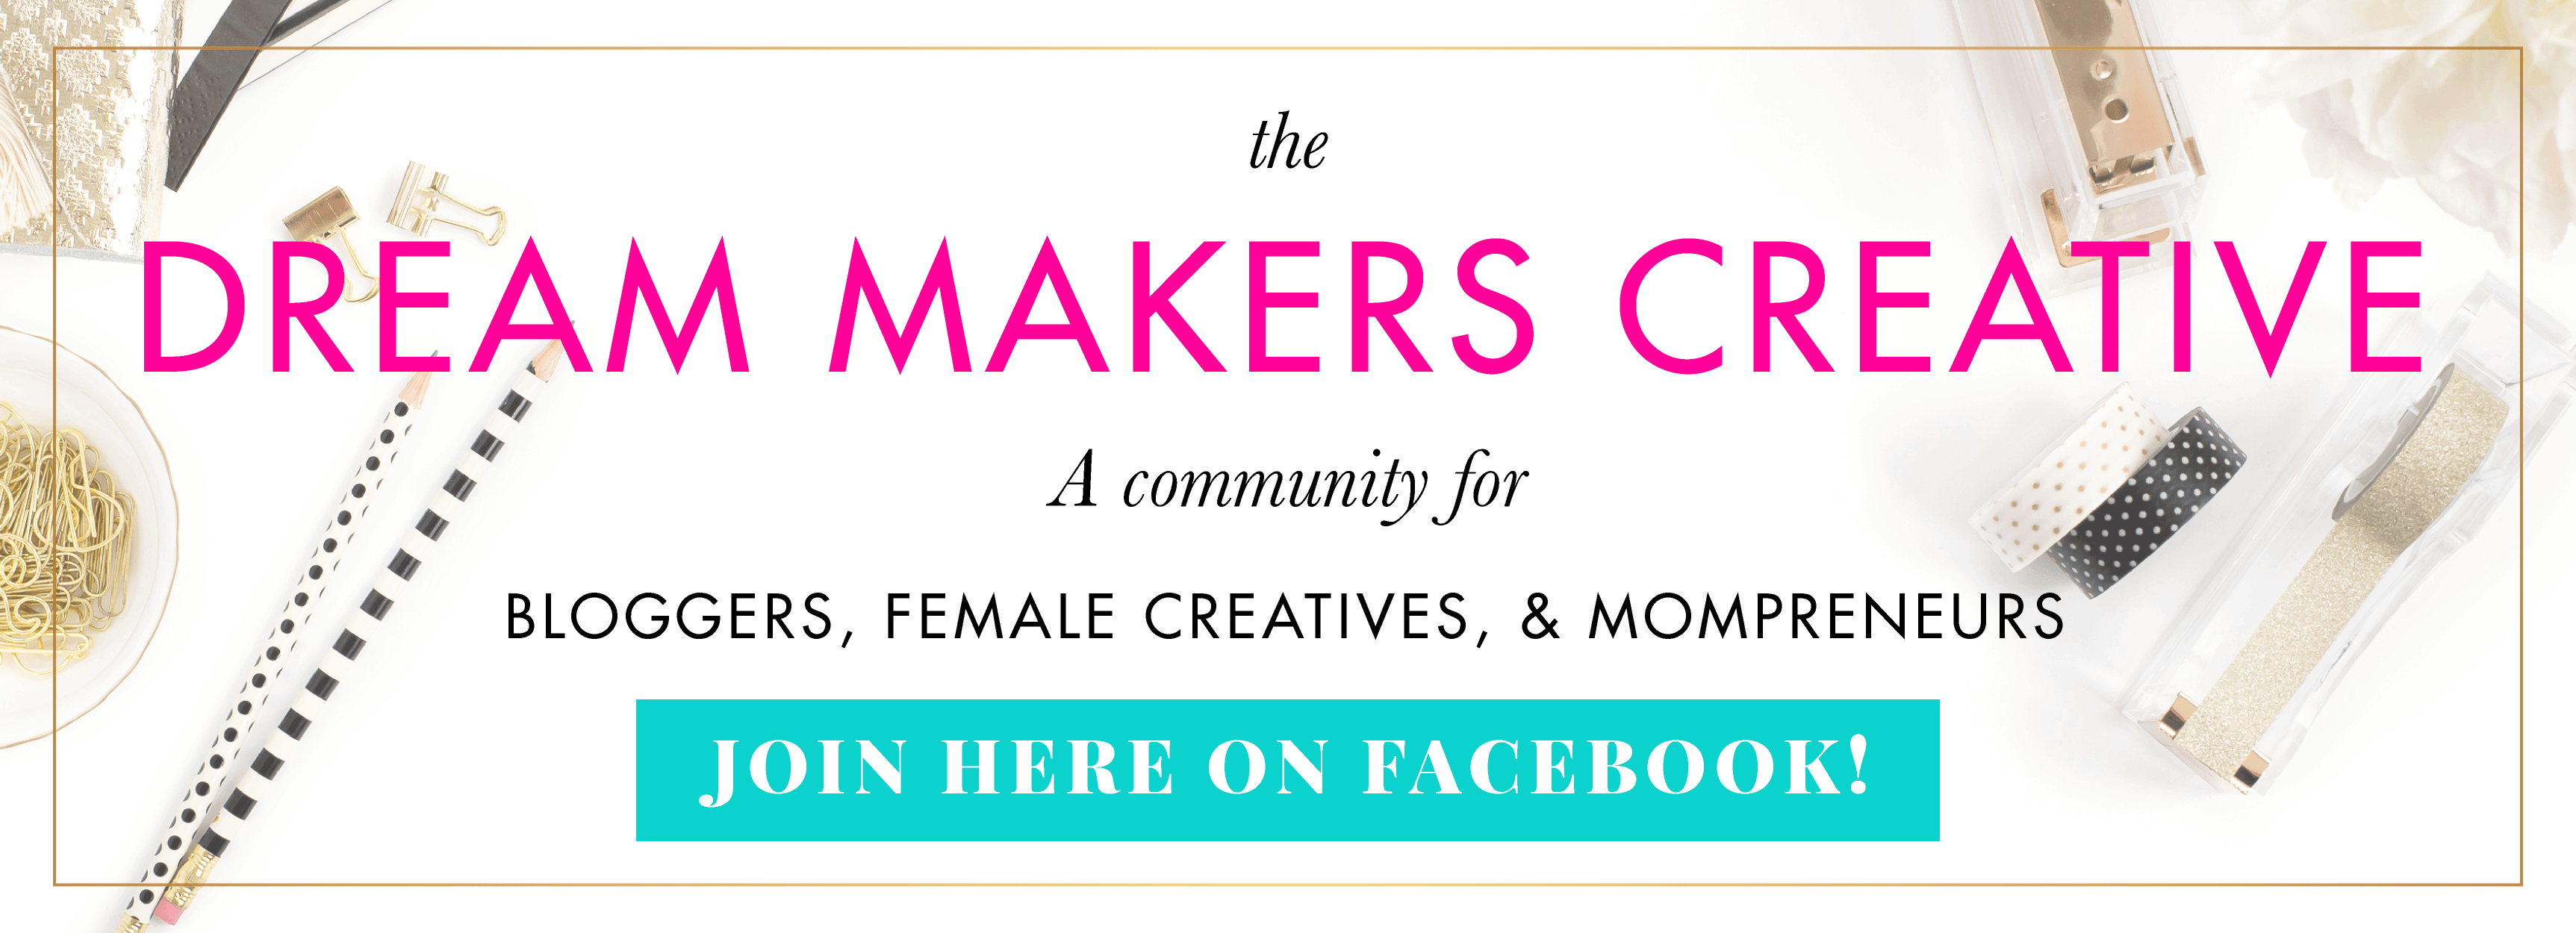 Dream Makers Creative Facebook Group by BlissandFaith.com